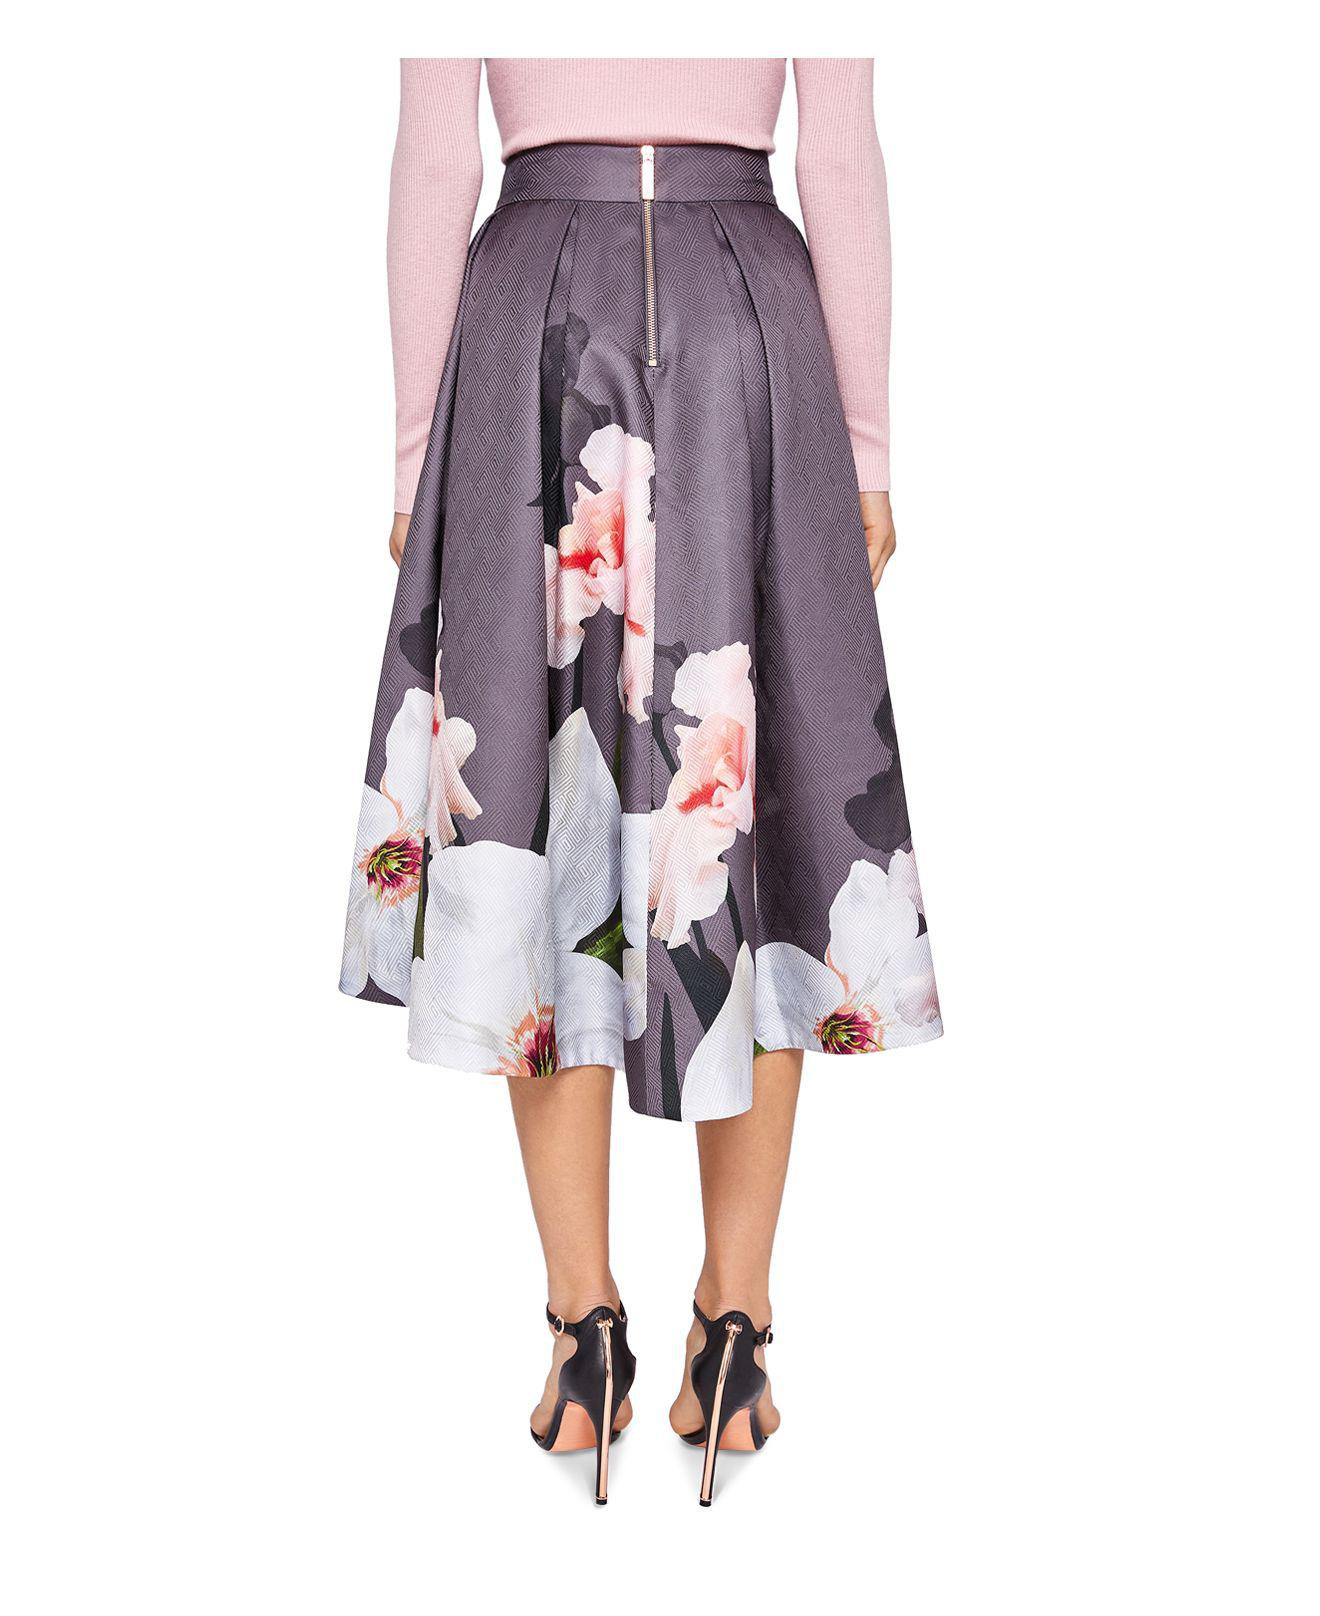 b628a1f95 Ted Baker Thali Chatsworth Bloom Skirt in Gray - Lyst